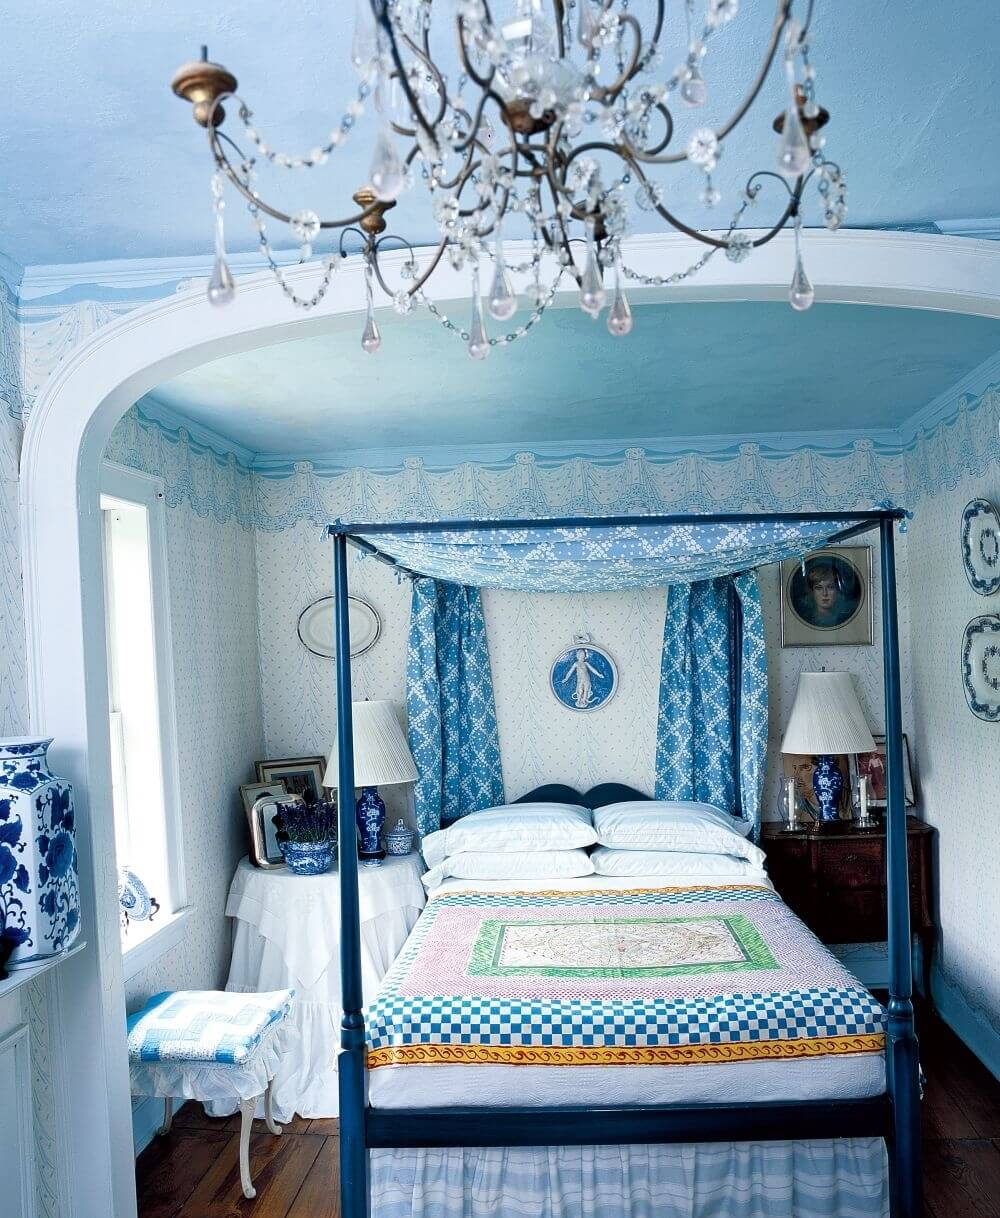 Eclectic Colorful Bedding